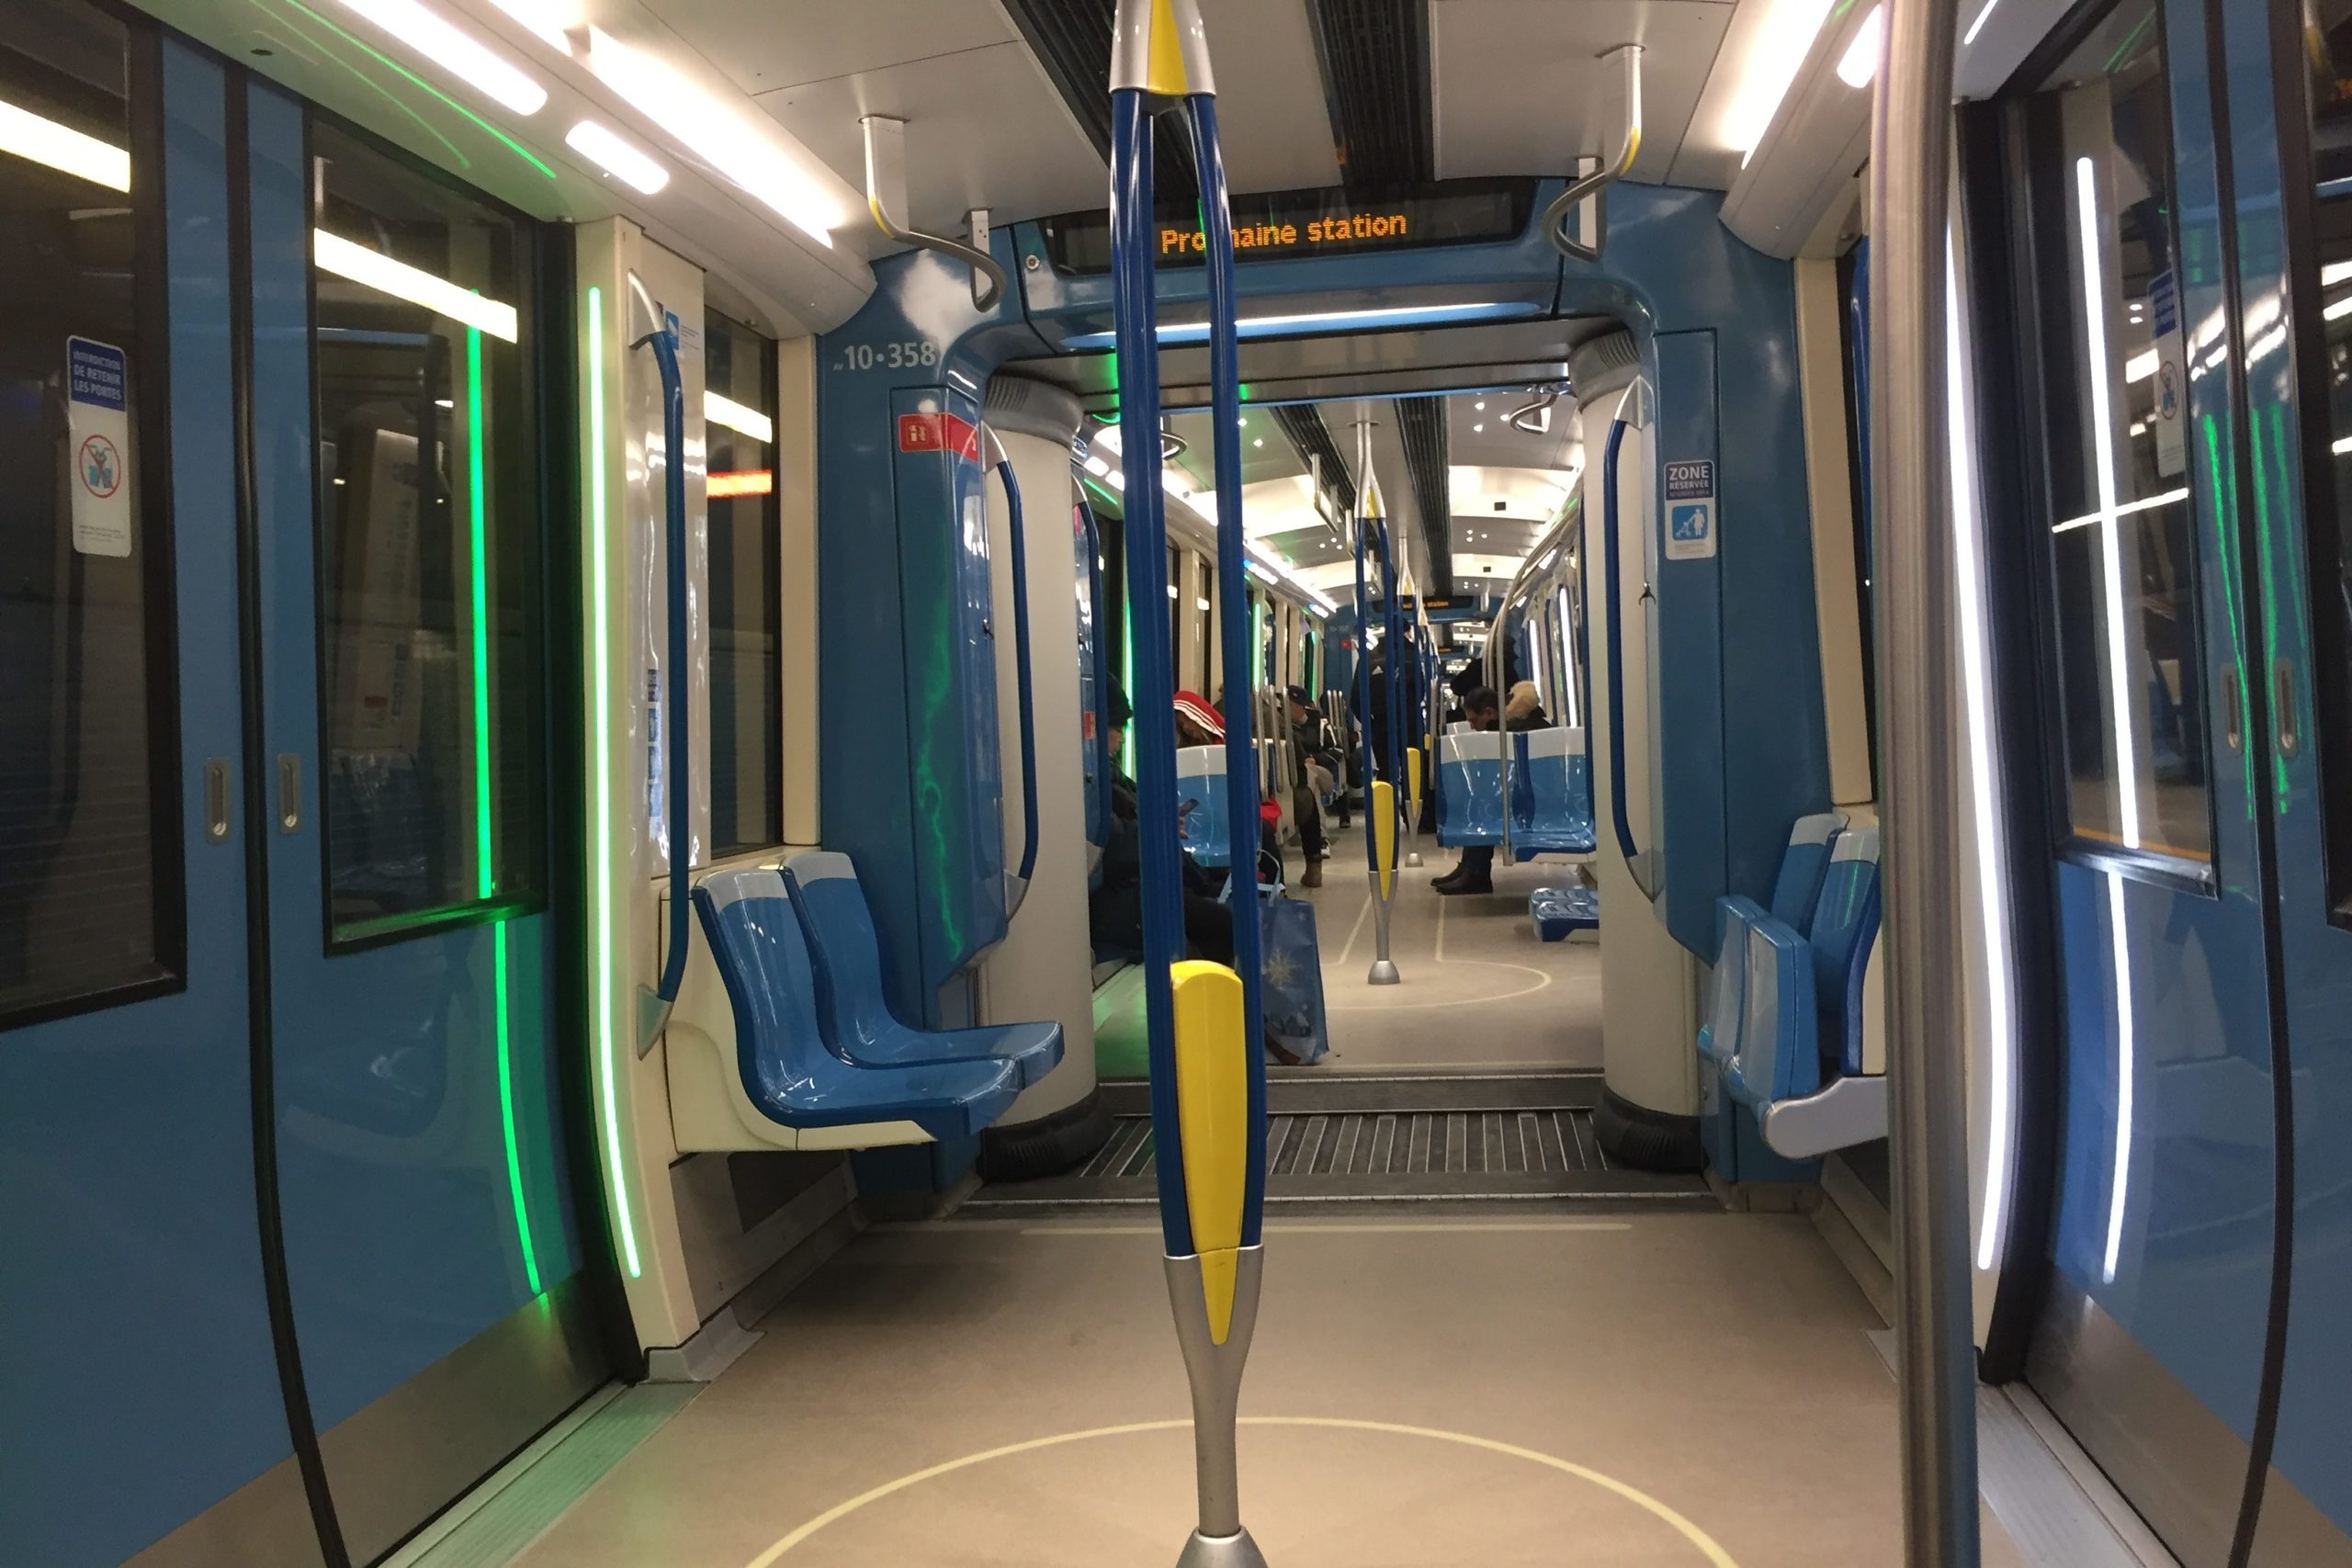 Lights beside the doors on the left are lit in green to indicate they will open at the next station. The doors on the right side of the train are lit in white.